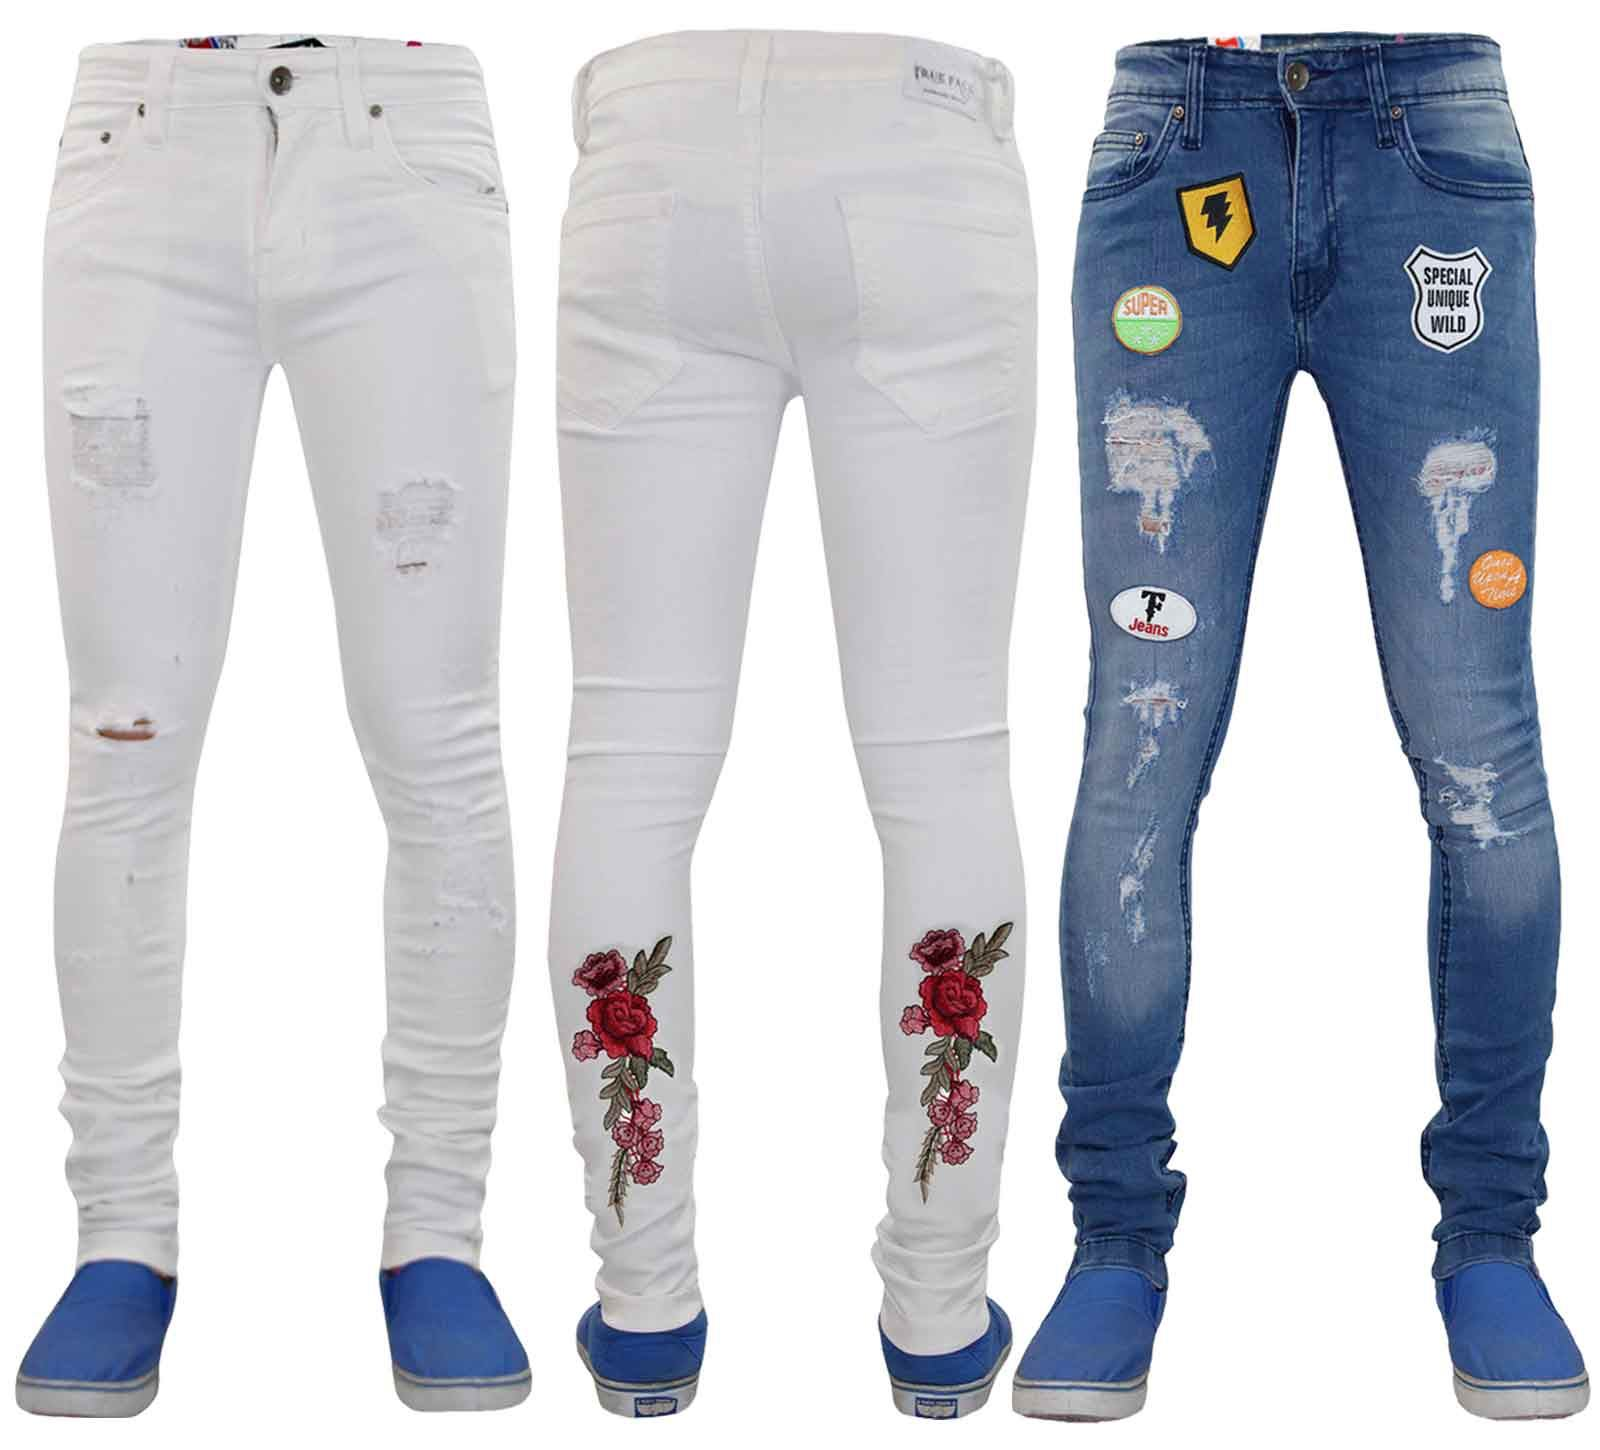 e36b4e285cd True Face Mens Badges Ripped Super Skinny Jeans Slim Stretch Cotton Denim  Pants